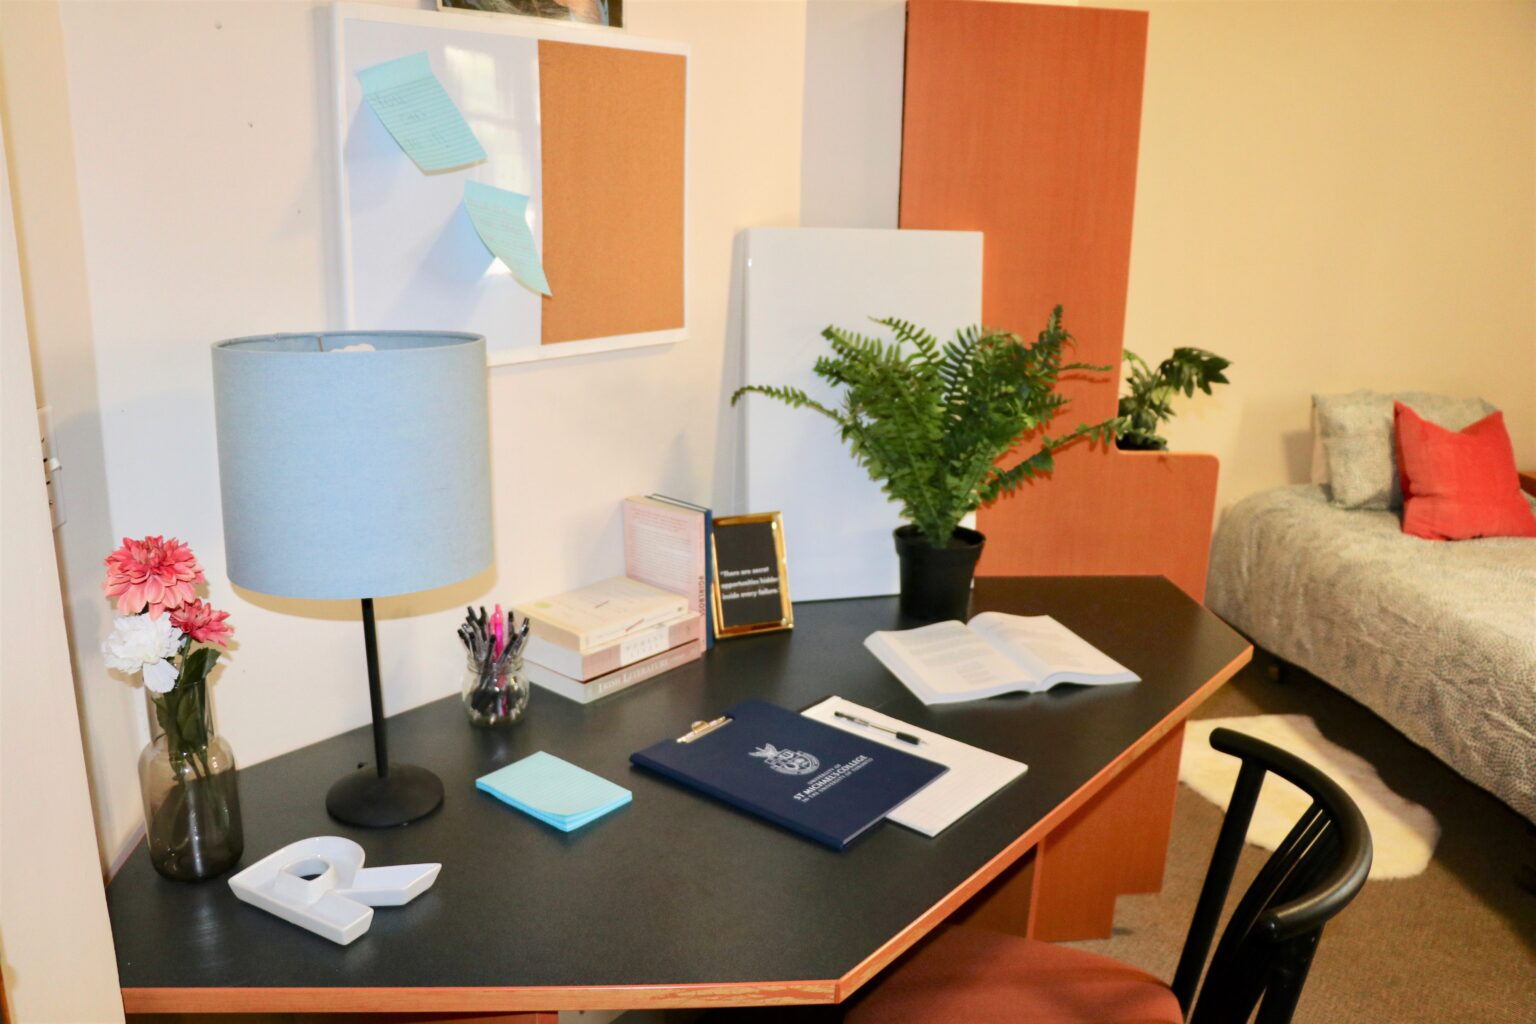 Sorbara Hall - single room; desk and bed